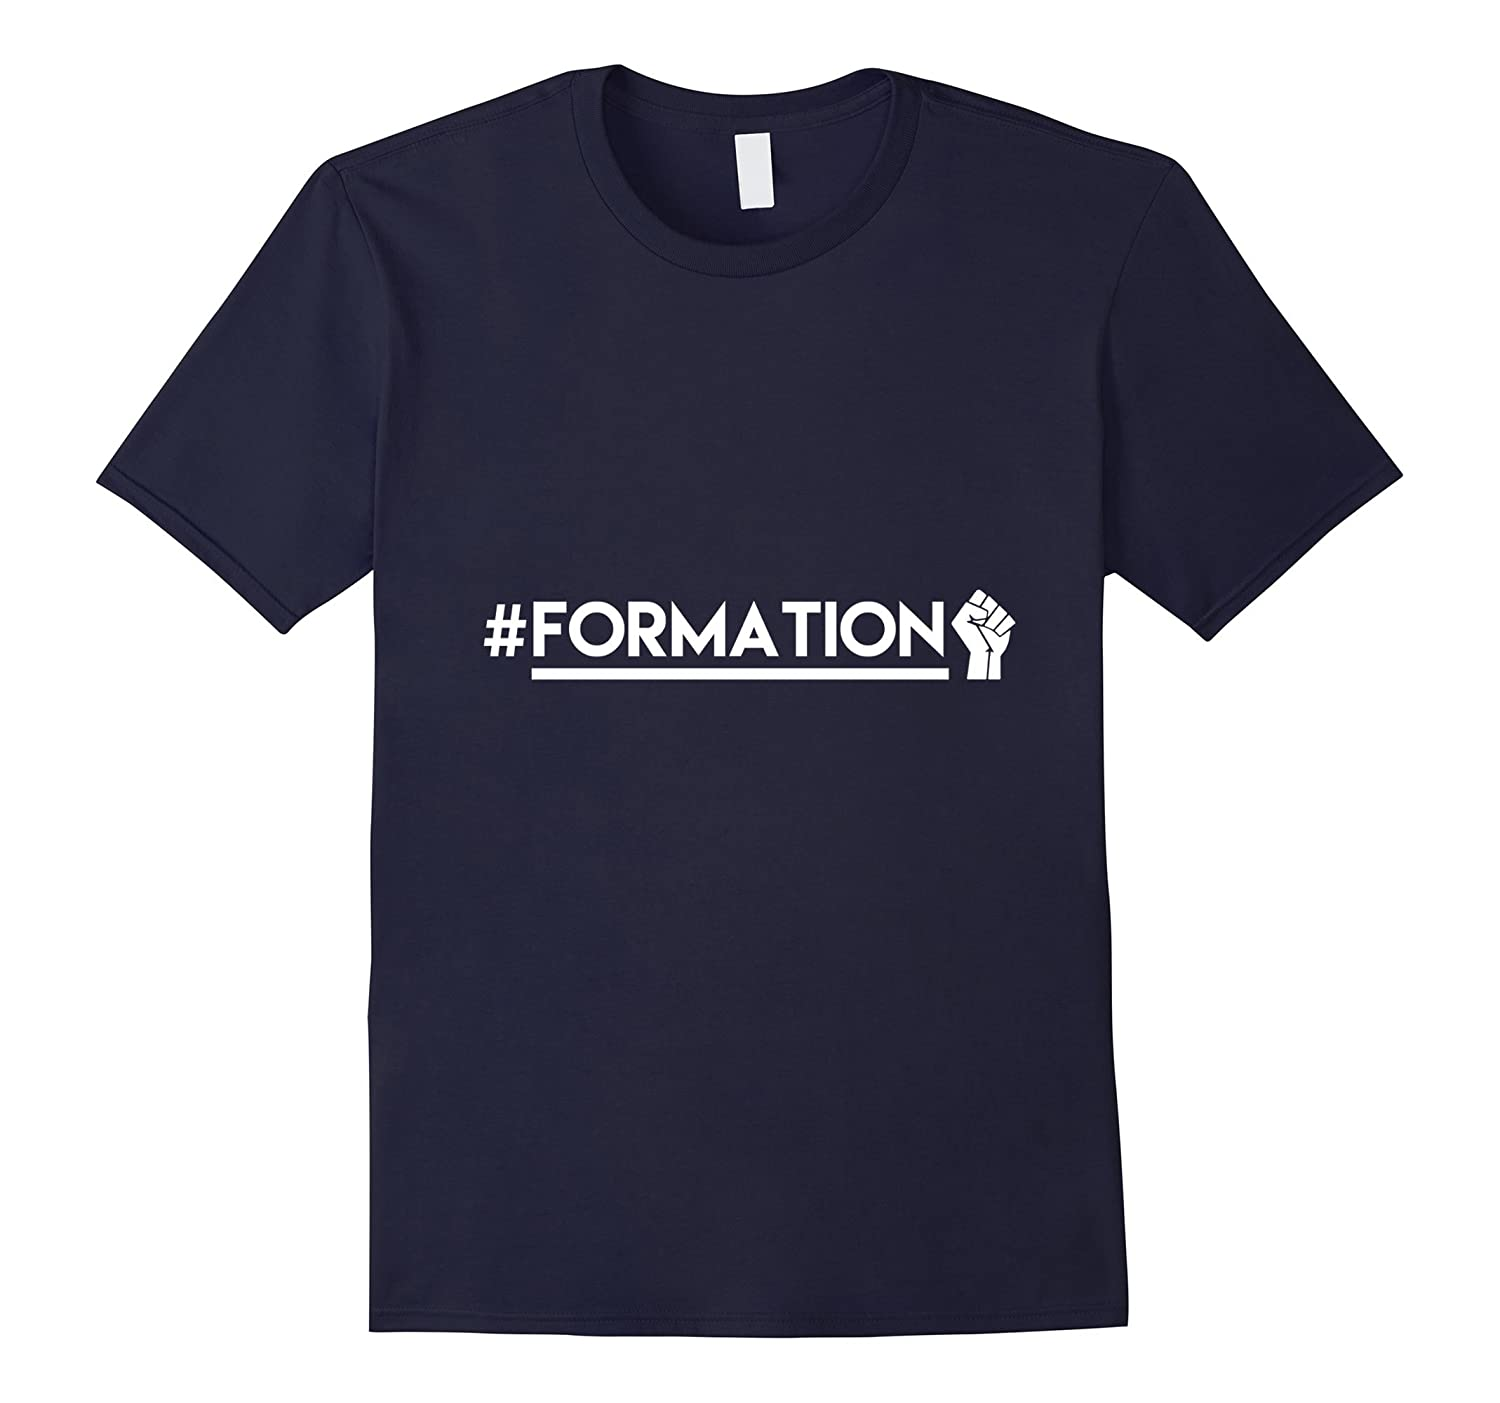 #Formation Hashtag Black Lives Matter T-Shirt (Formation)-TH